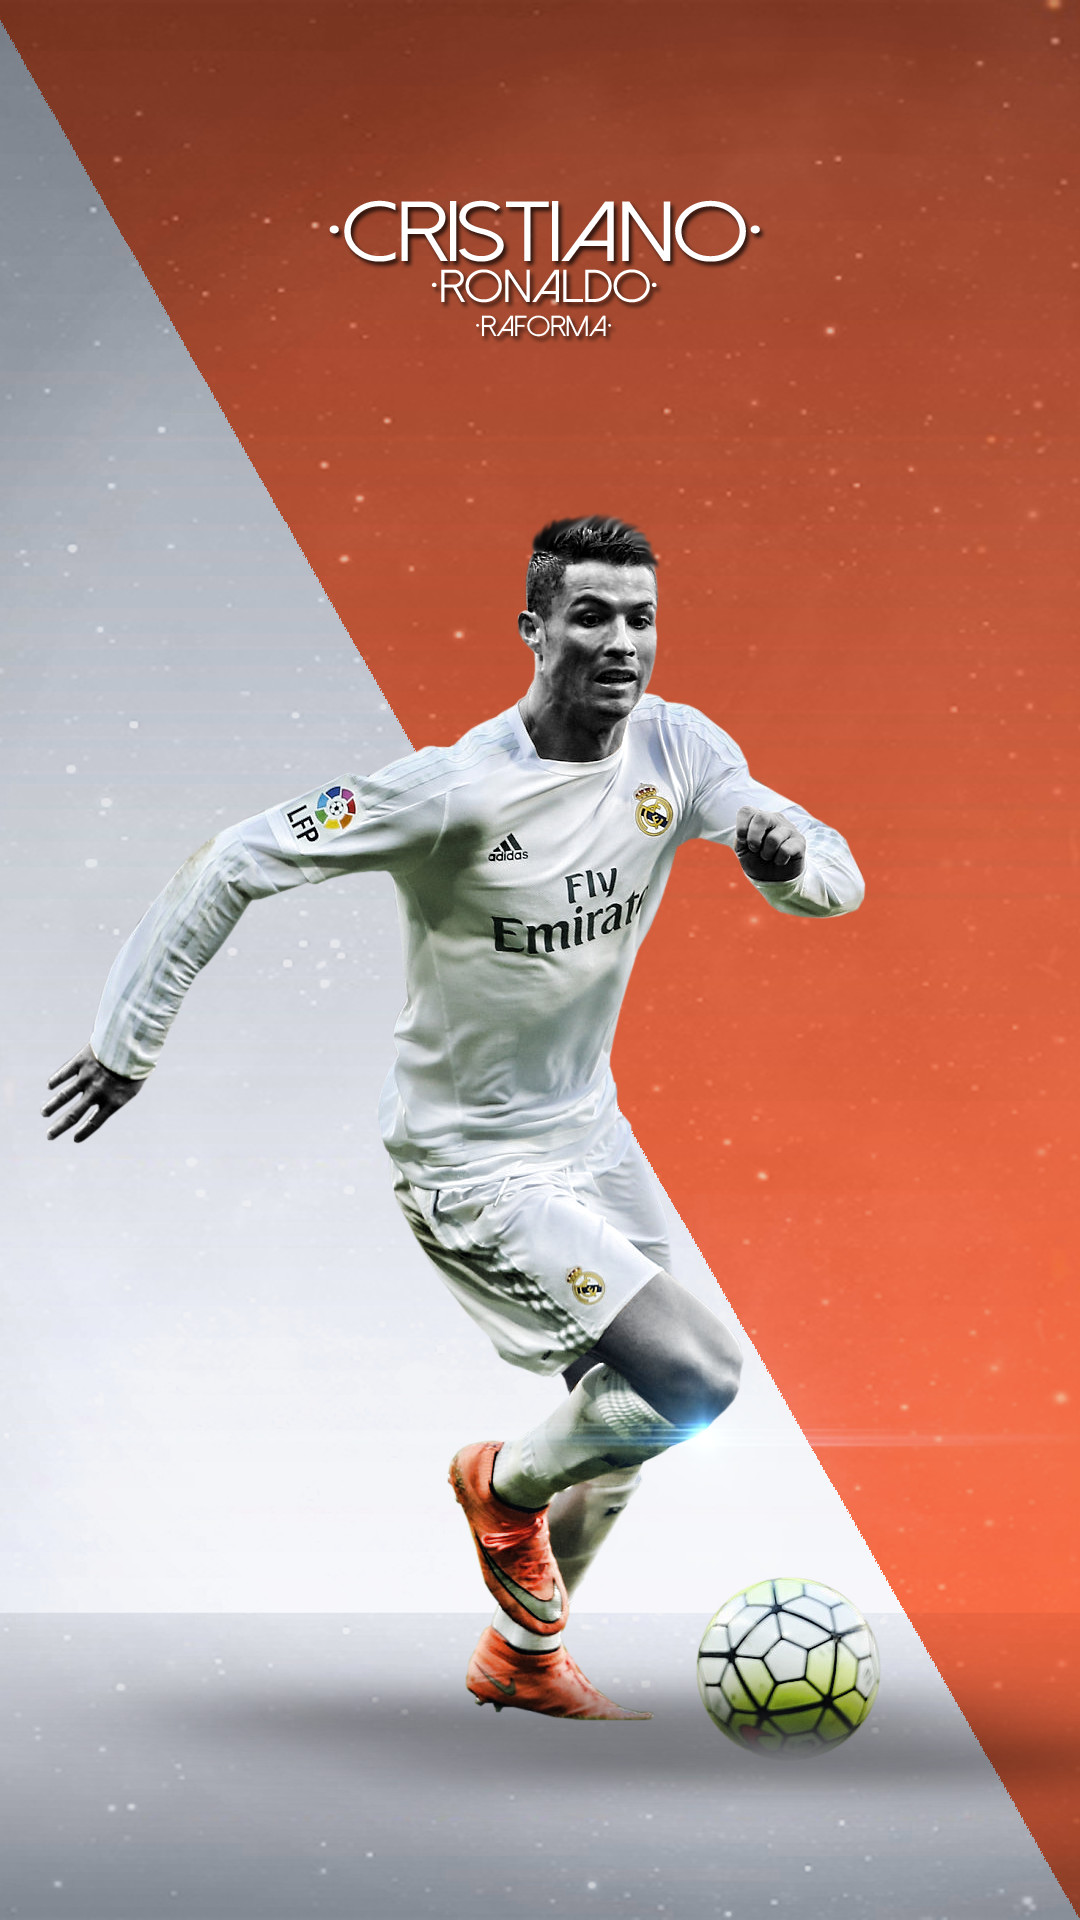 Real Madrid Iphone 4 Wallpaper Cristiano Ronaldo Wallpaper For Iphone 74 Images